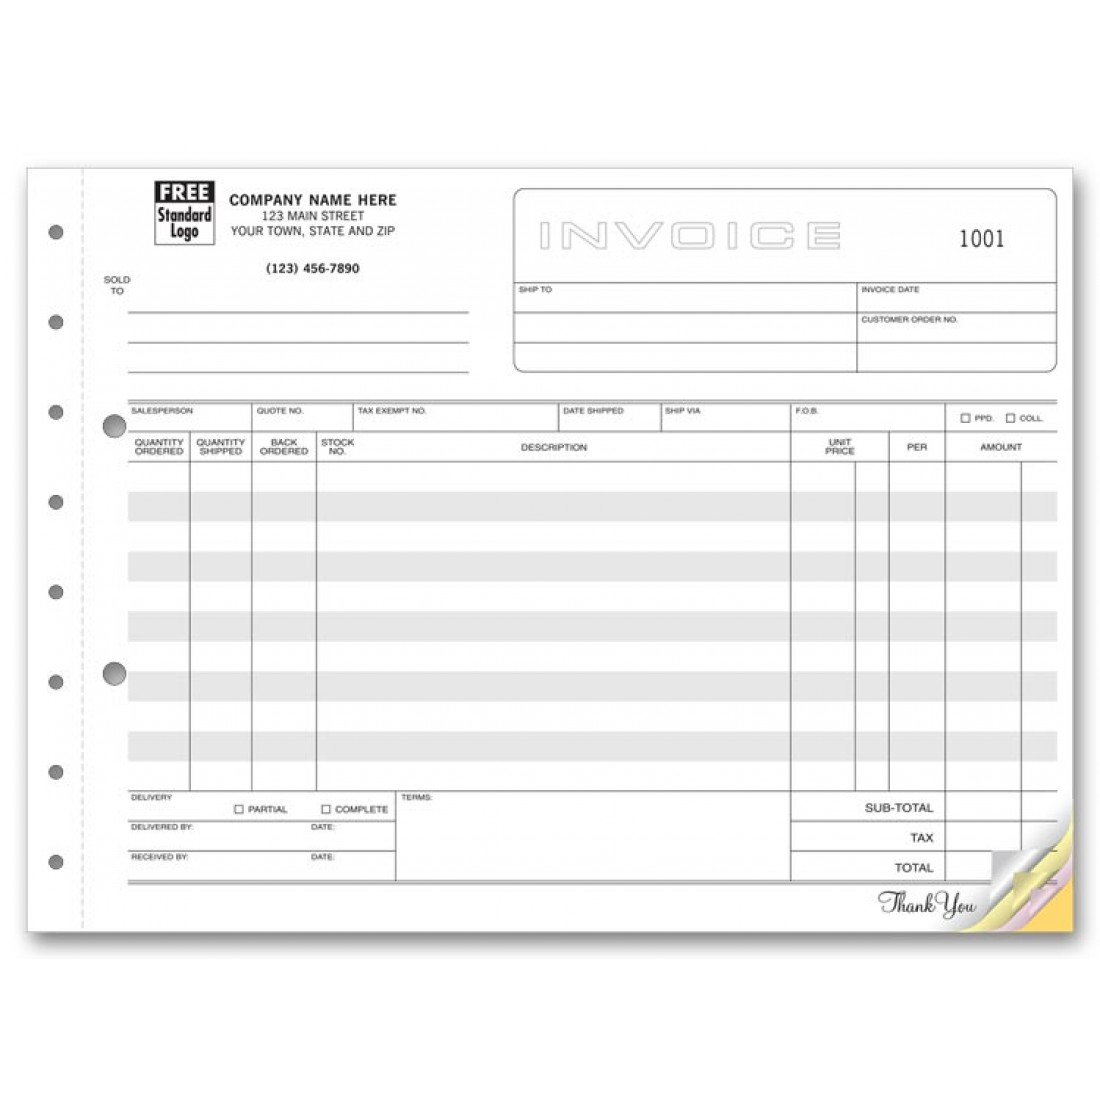 Horizontal Shipping Invoice Forms | Free Shipping With Shipping Invoice Template